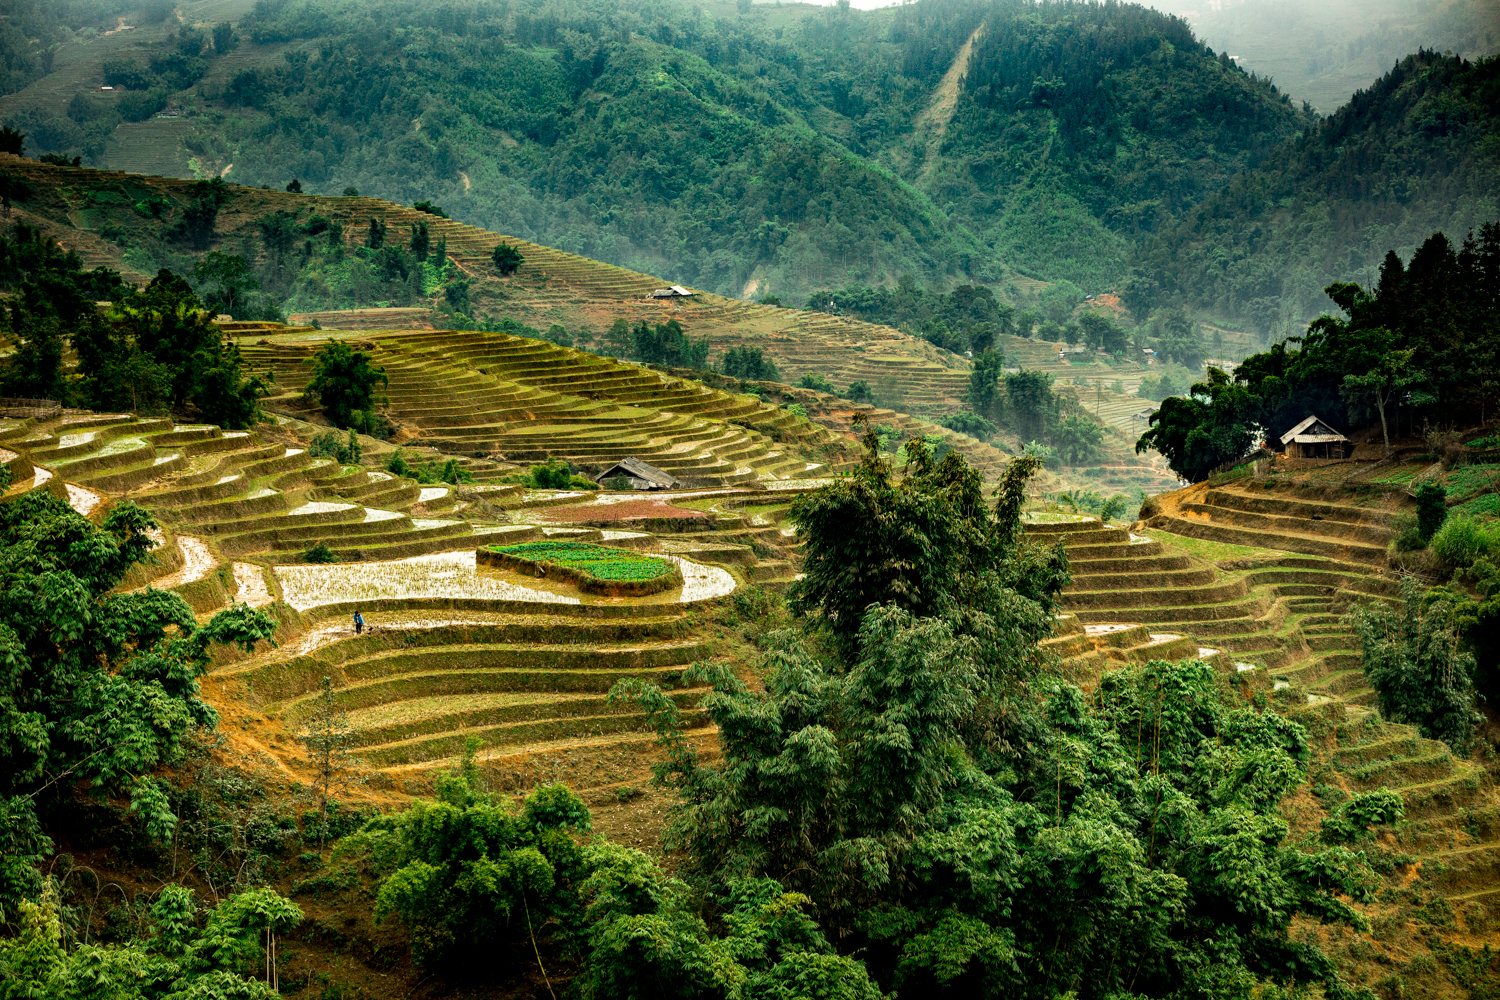 Rice patties near Sapa.